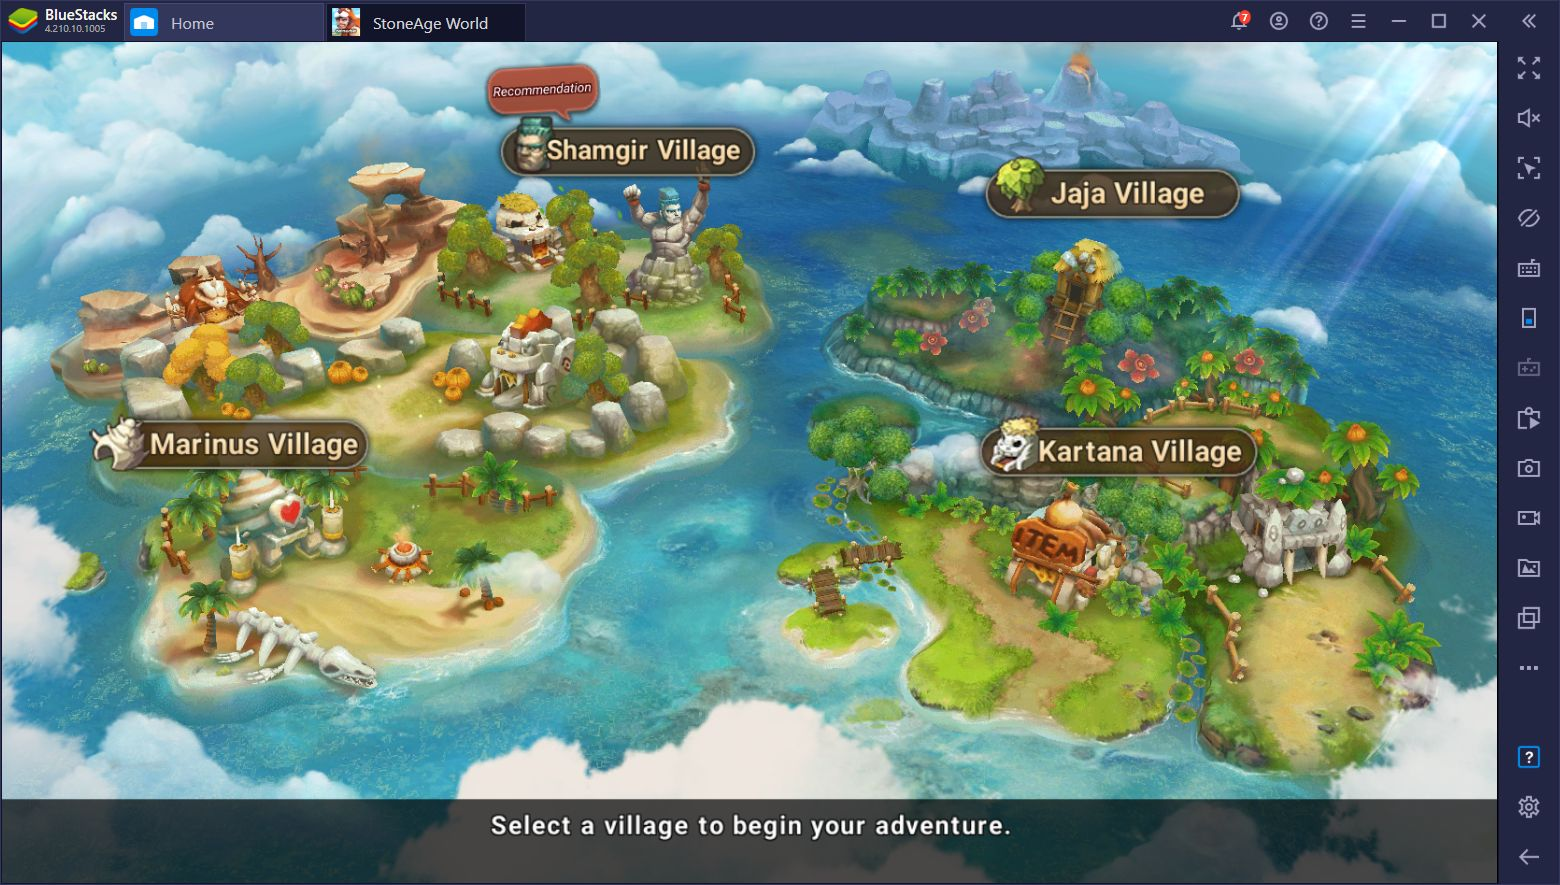 How to Play StoneAge World on PC With BlueStacks